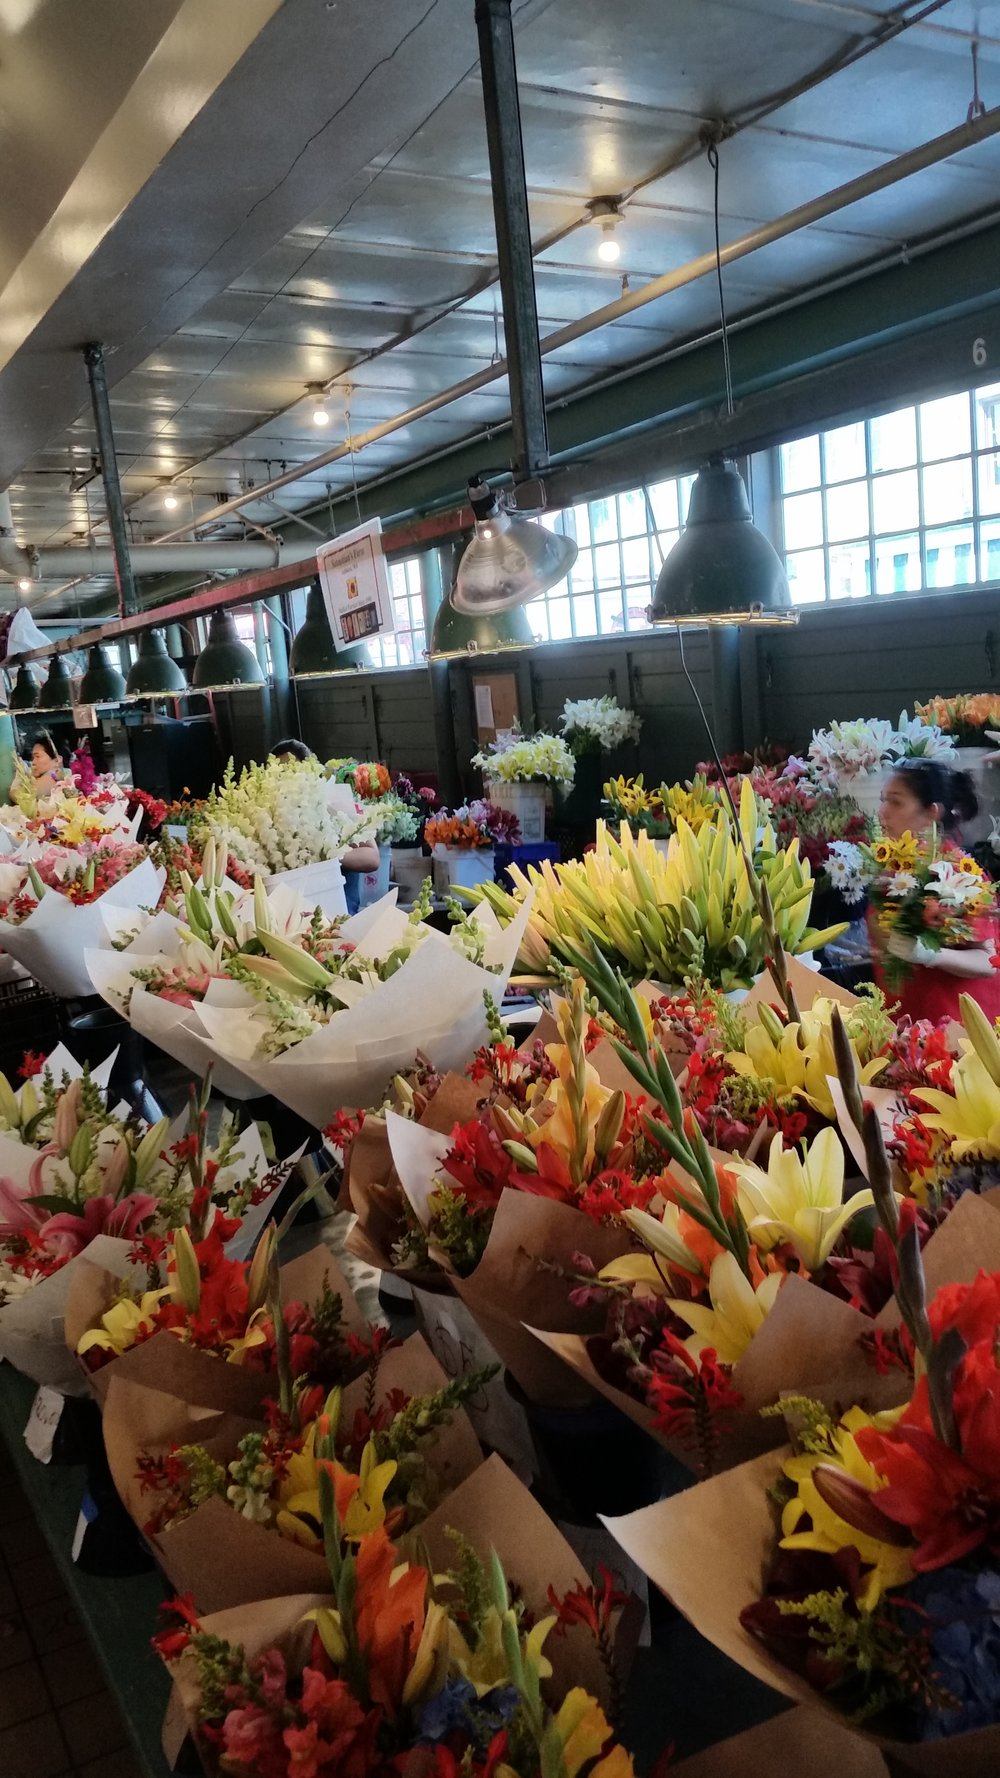 Flowers at Pike Place market!